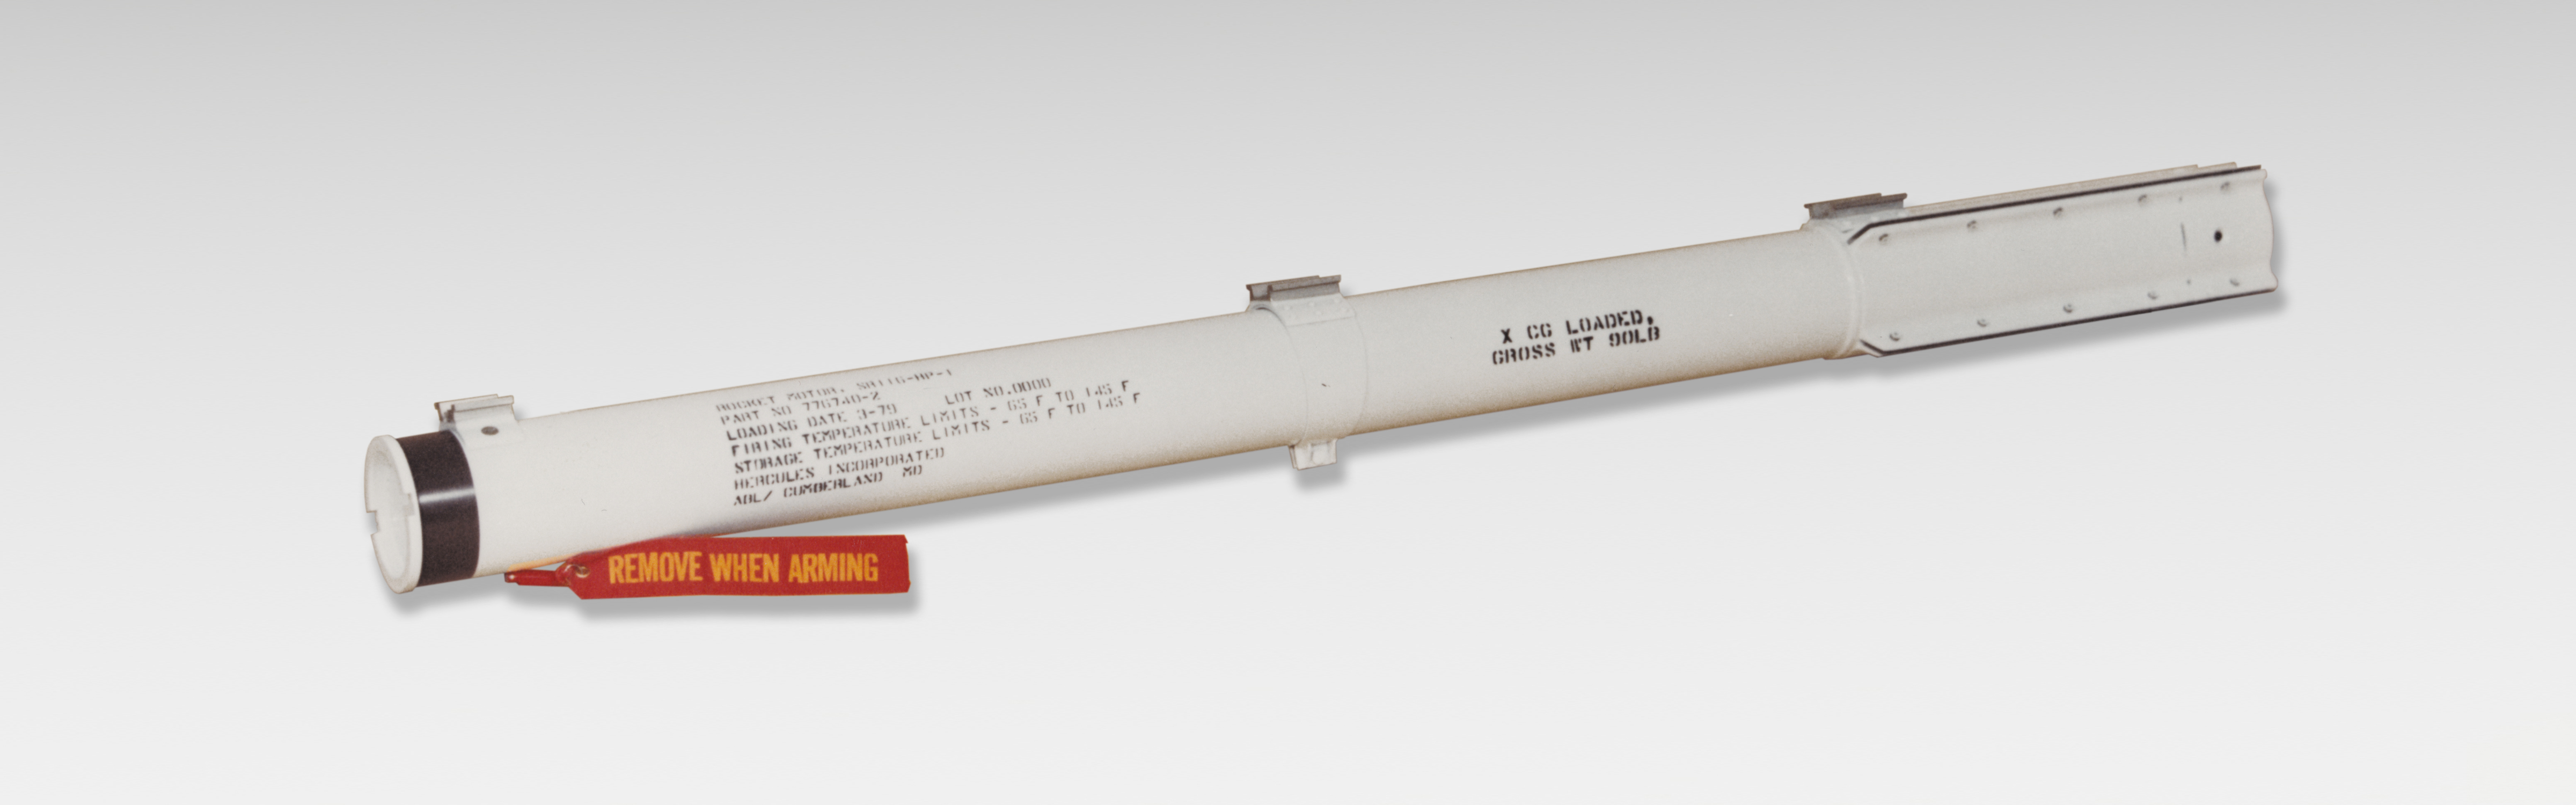 Orbital ATK's SR116 AIM-9P Sidewinder rocket motor is a single-thrust propulsion system used to extend the service life of AIM-9P missiles in use by NATO and allied countries. (Photo: Business Wire)